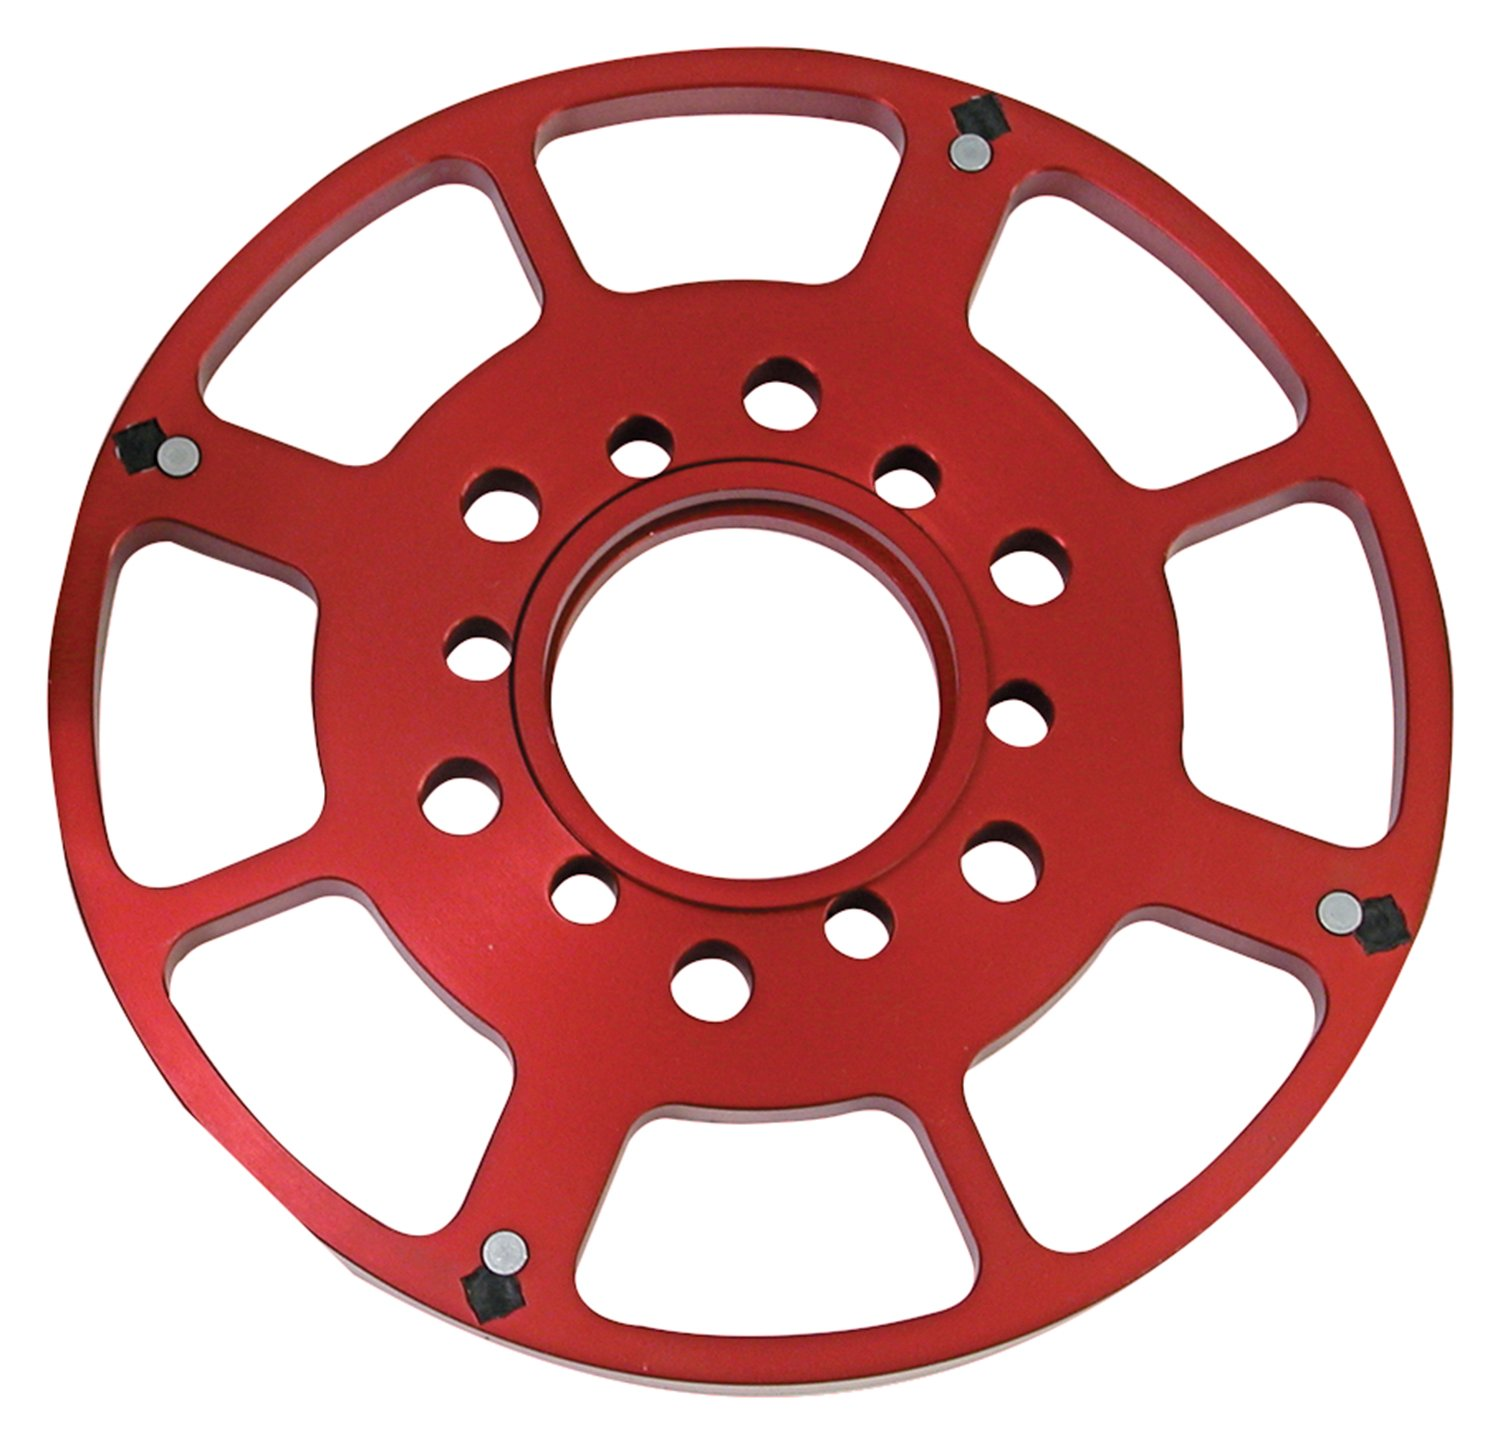 8621 - Trigger Wheel, Flying Magnet, Big Block Chevy Image